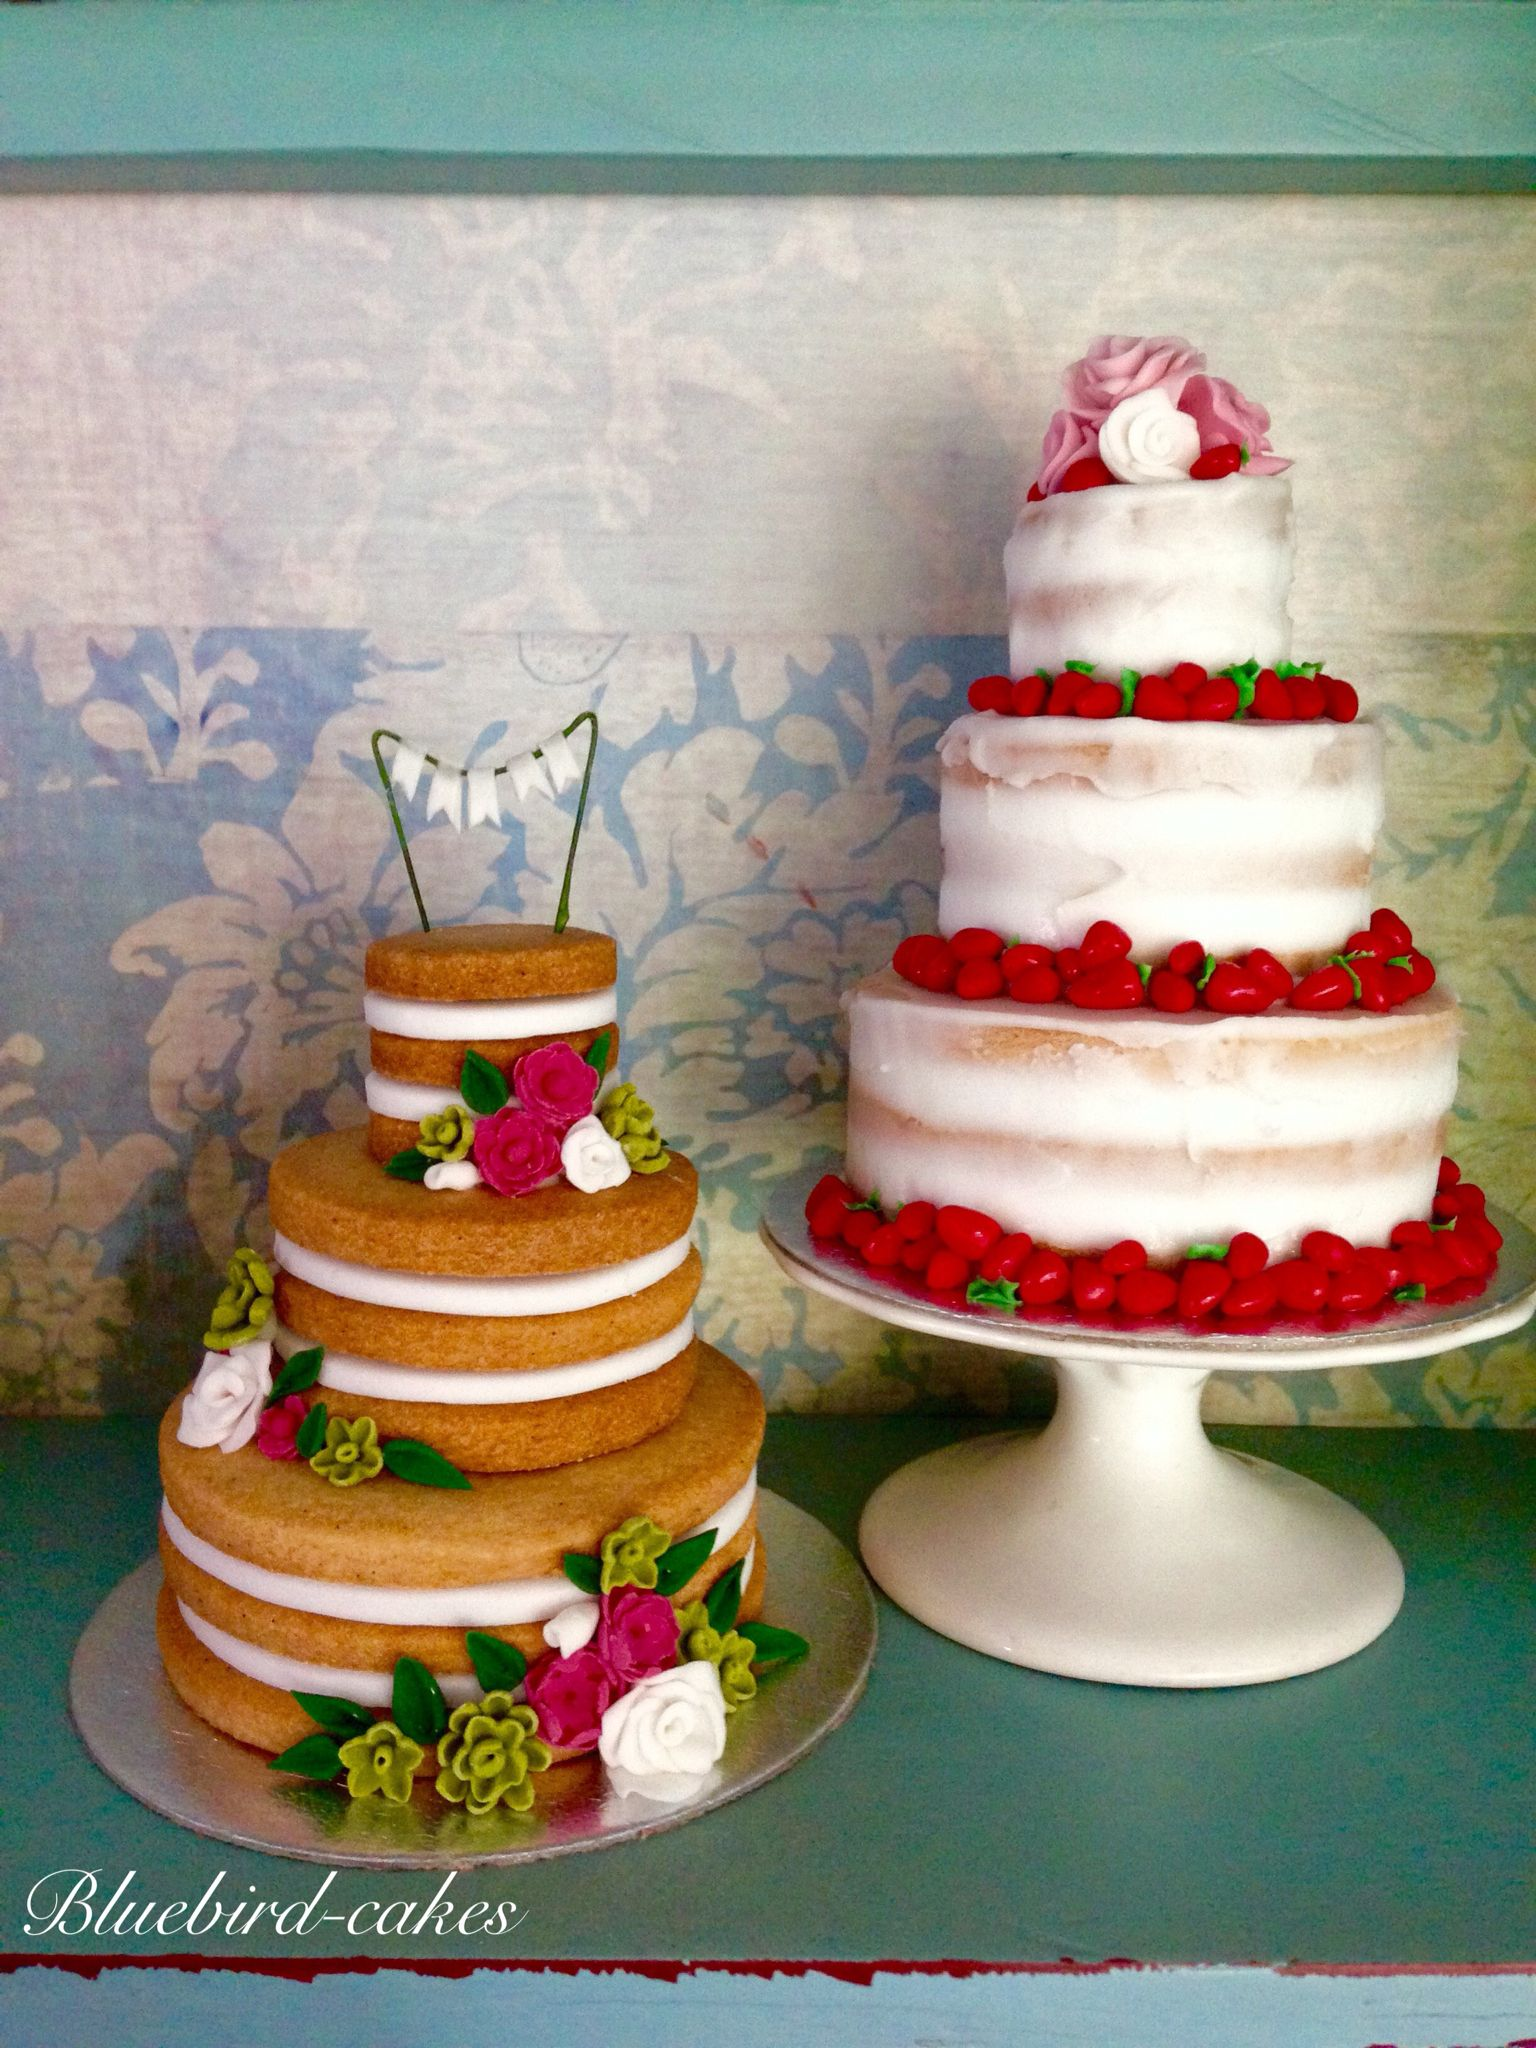 Mini naked weddings cake by Zoe Smith Bluebird-cakes.  Just 4 inches tall…